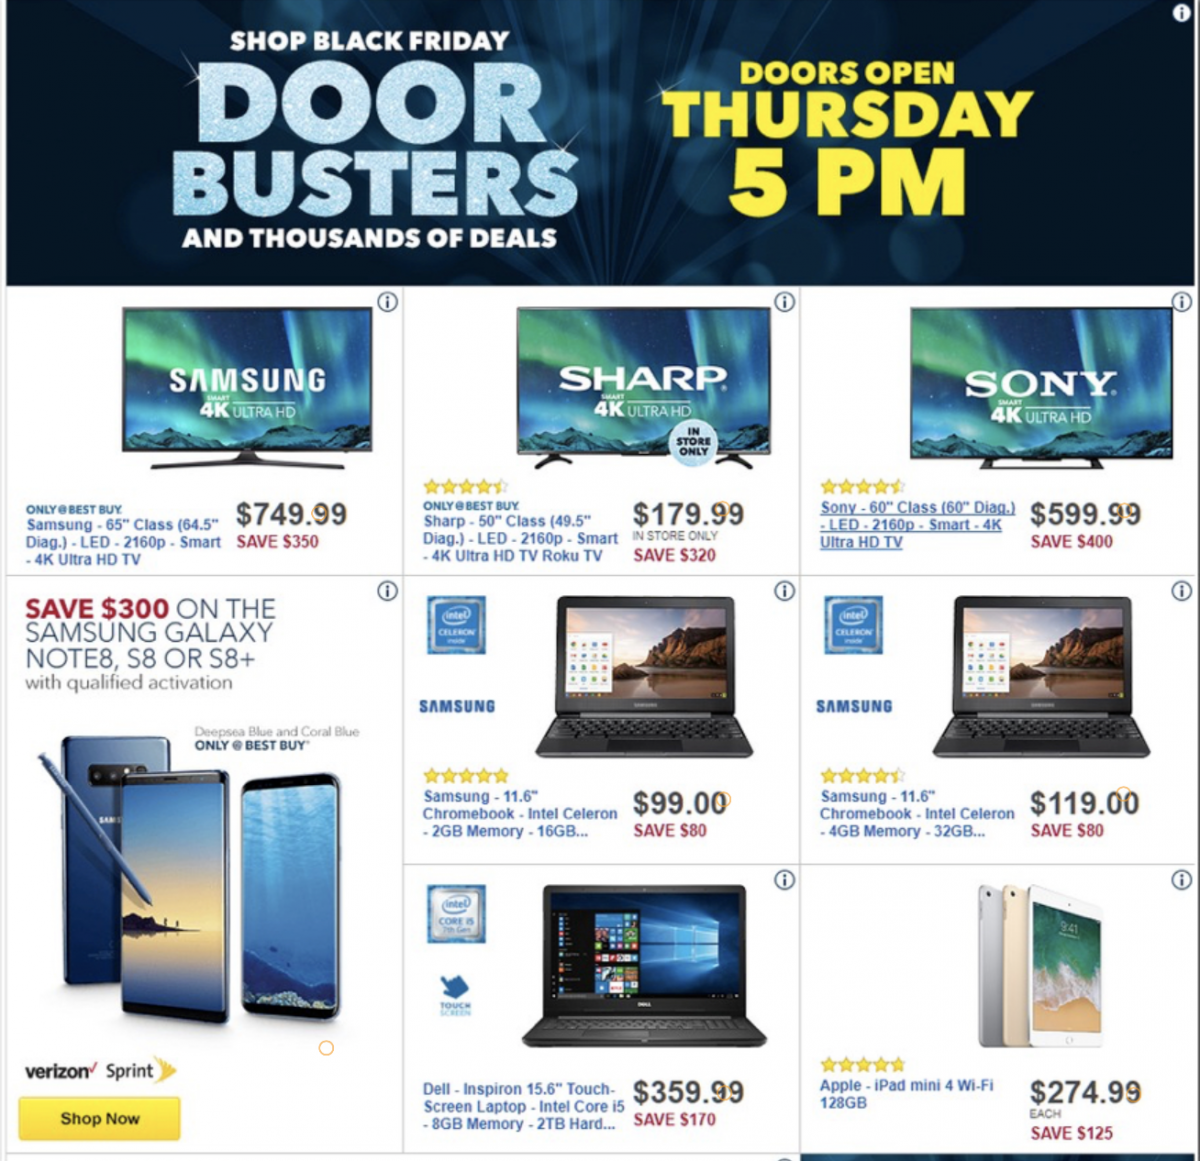 Black Friday 2017 Deals Best Buy Target Ad Released Walmart Still Missing